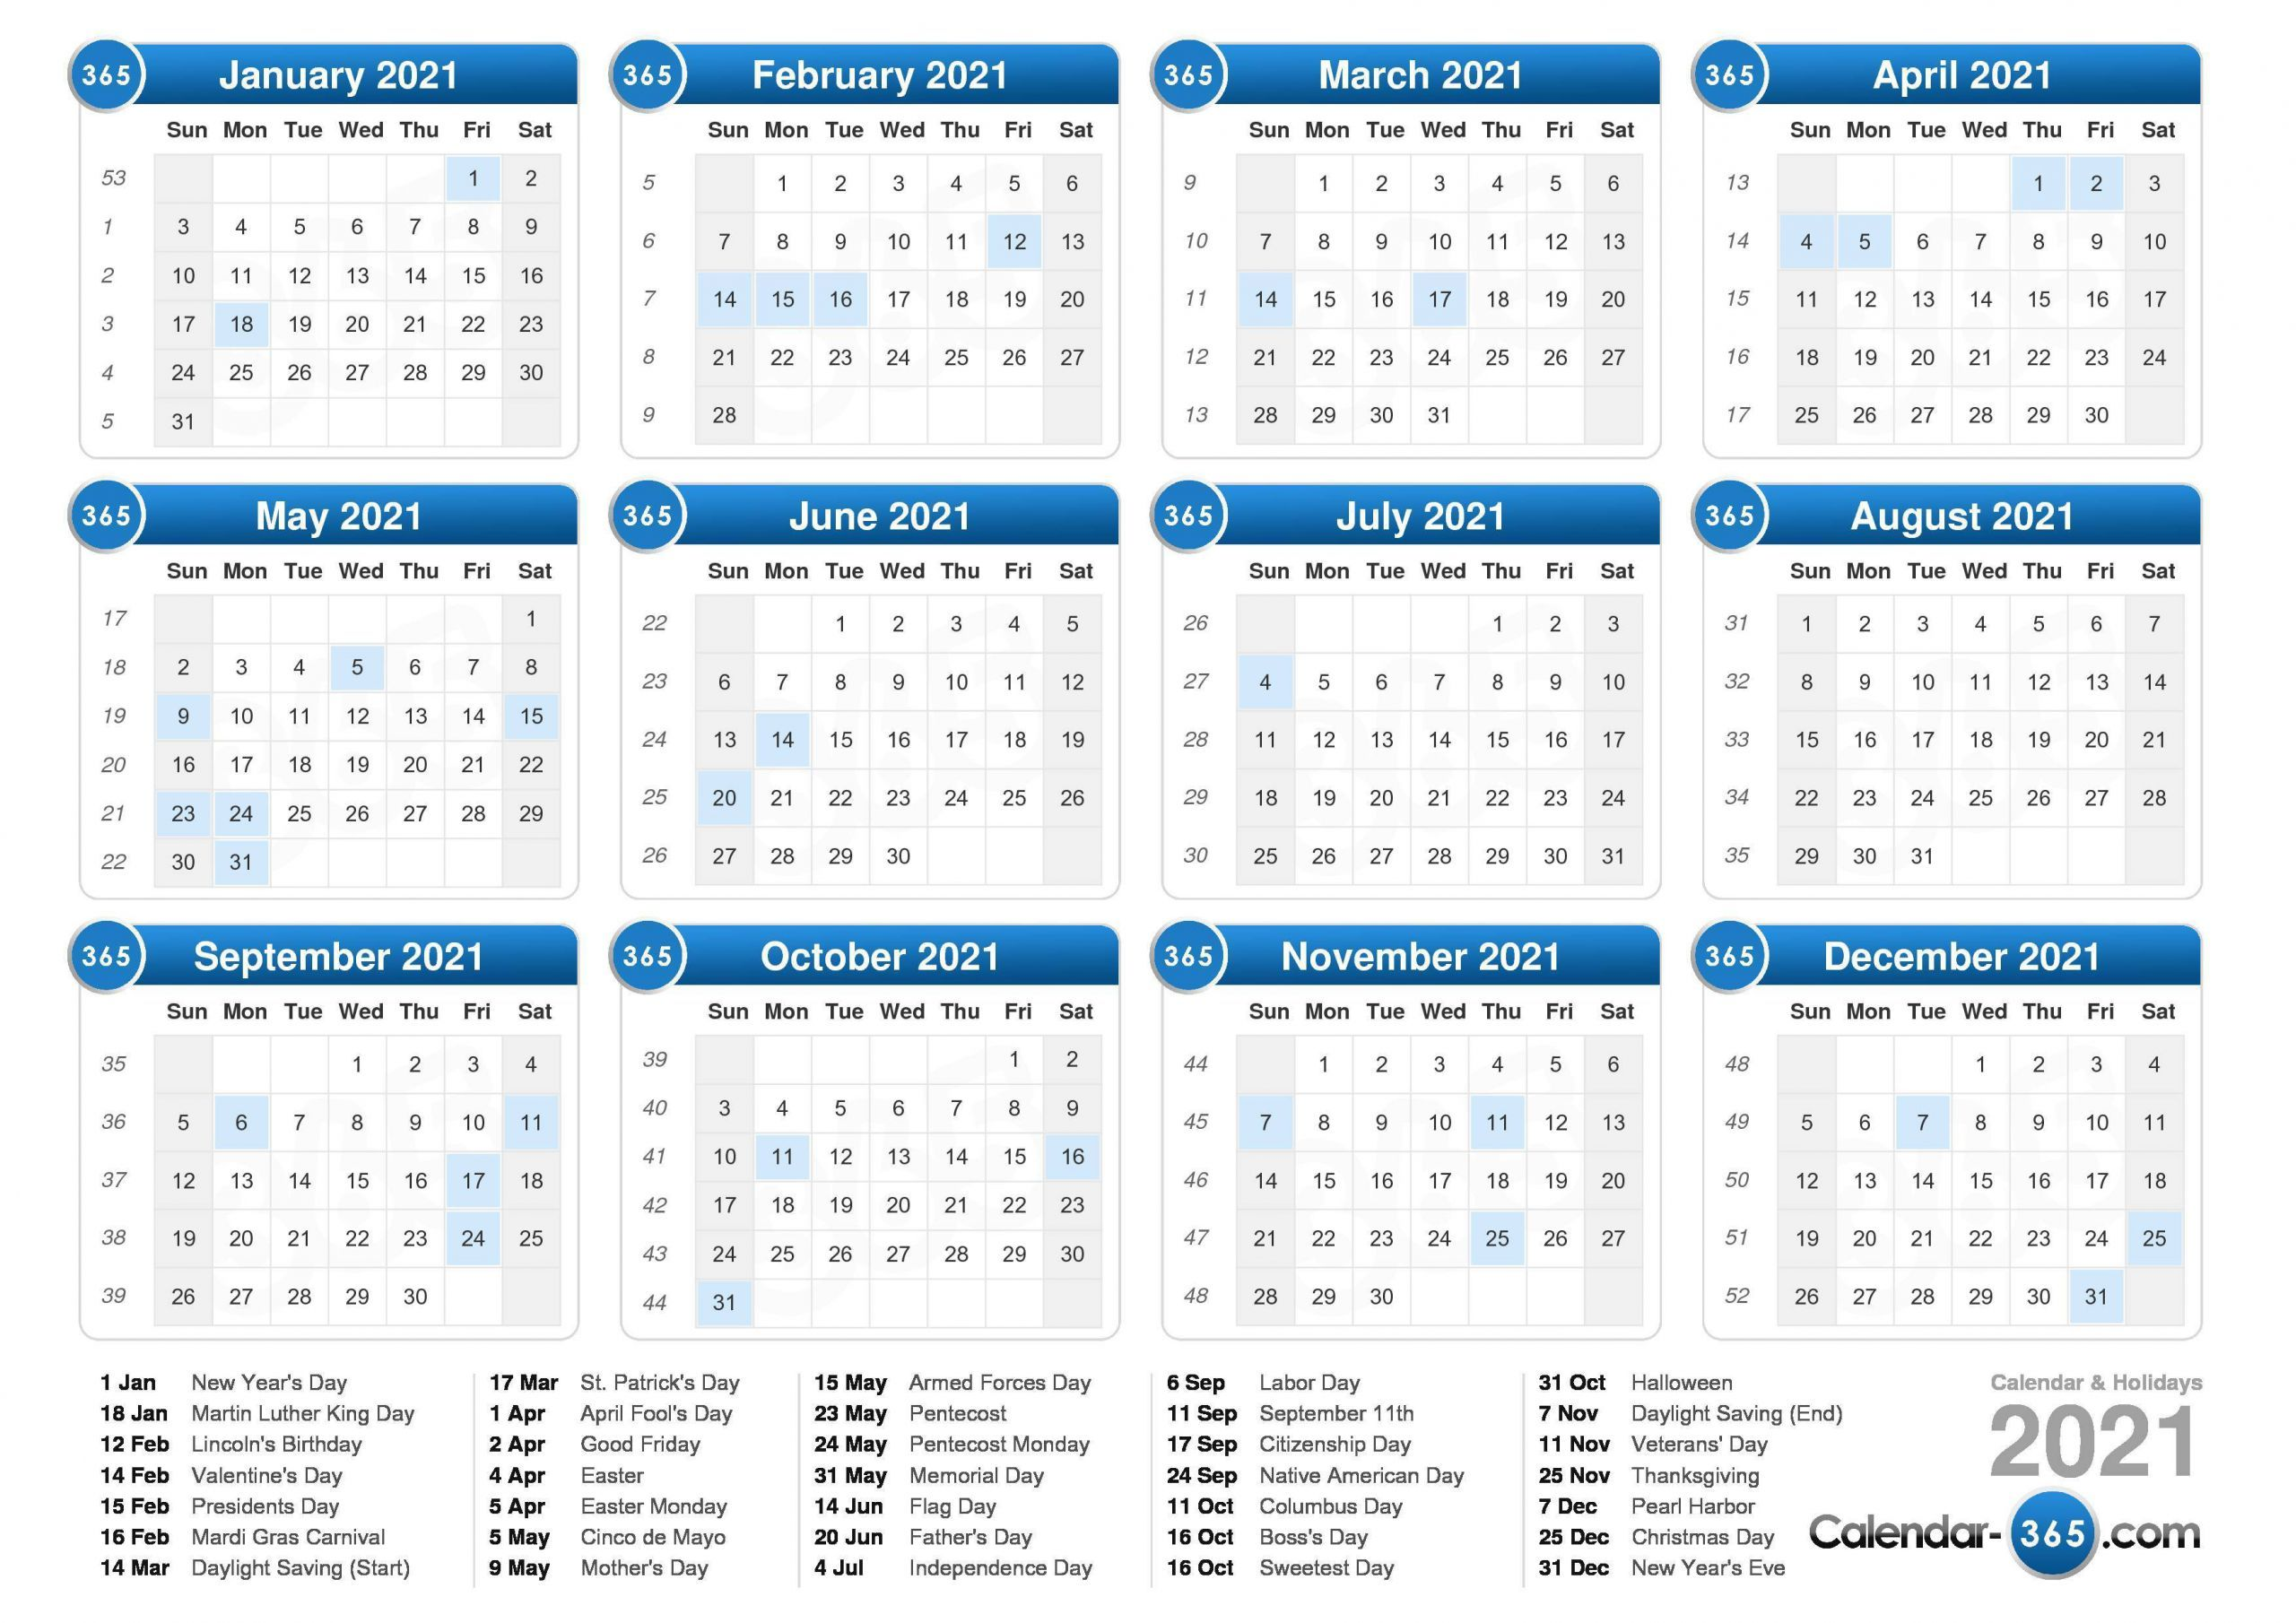 2021 Calendar By Week Numbers 2021 calendar 2021 calendar with week numbers free 365 days 2021